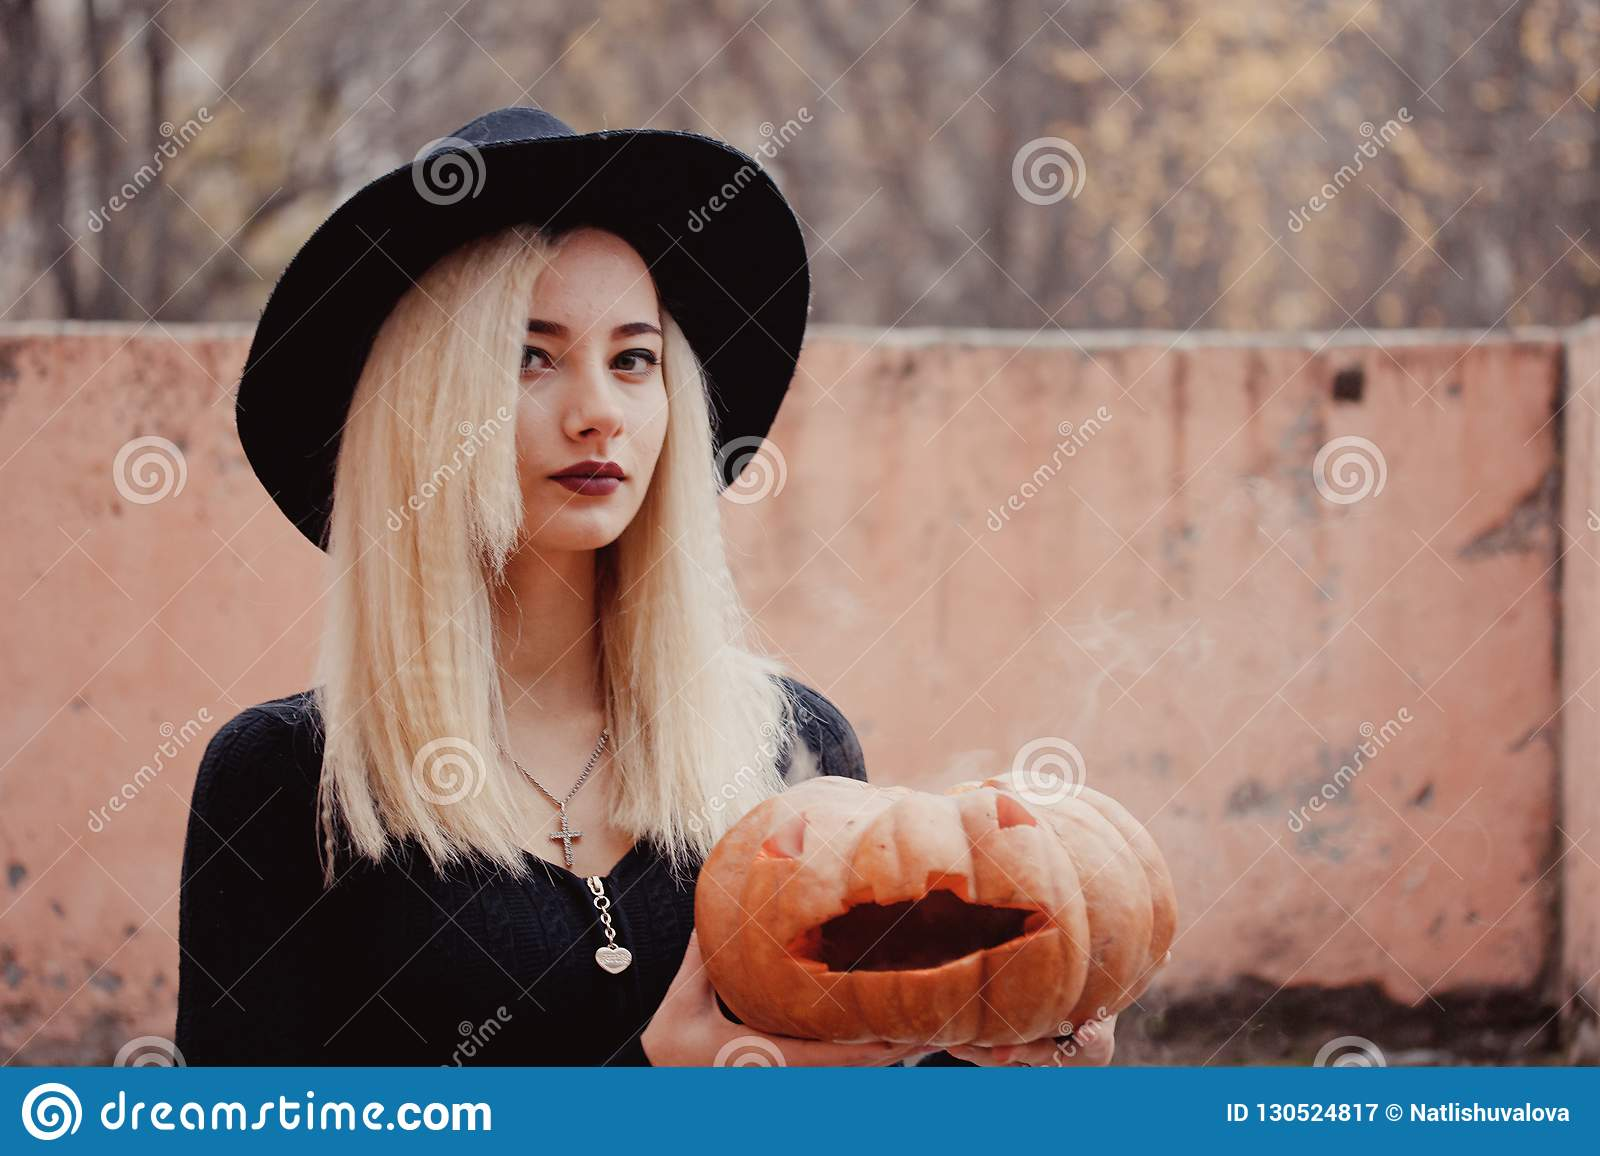 Young woman in the black coat holding the halloween pumpkin with the white smoke coming from inside of it in the autumn